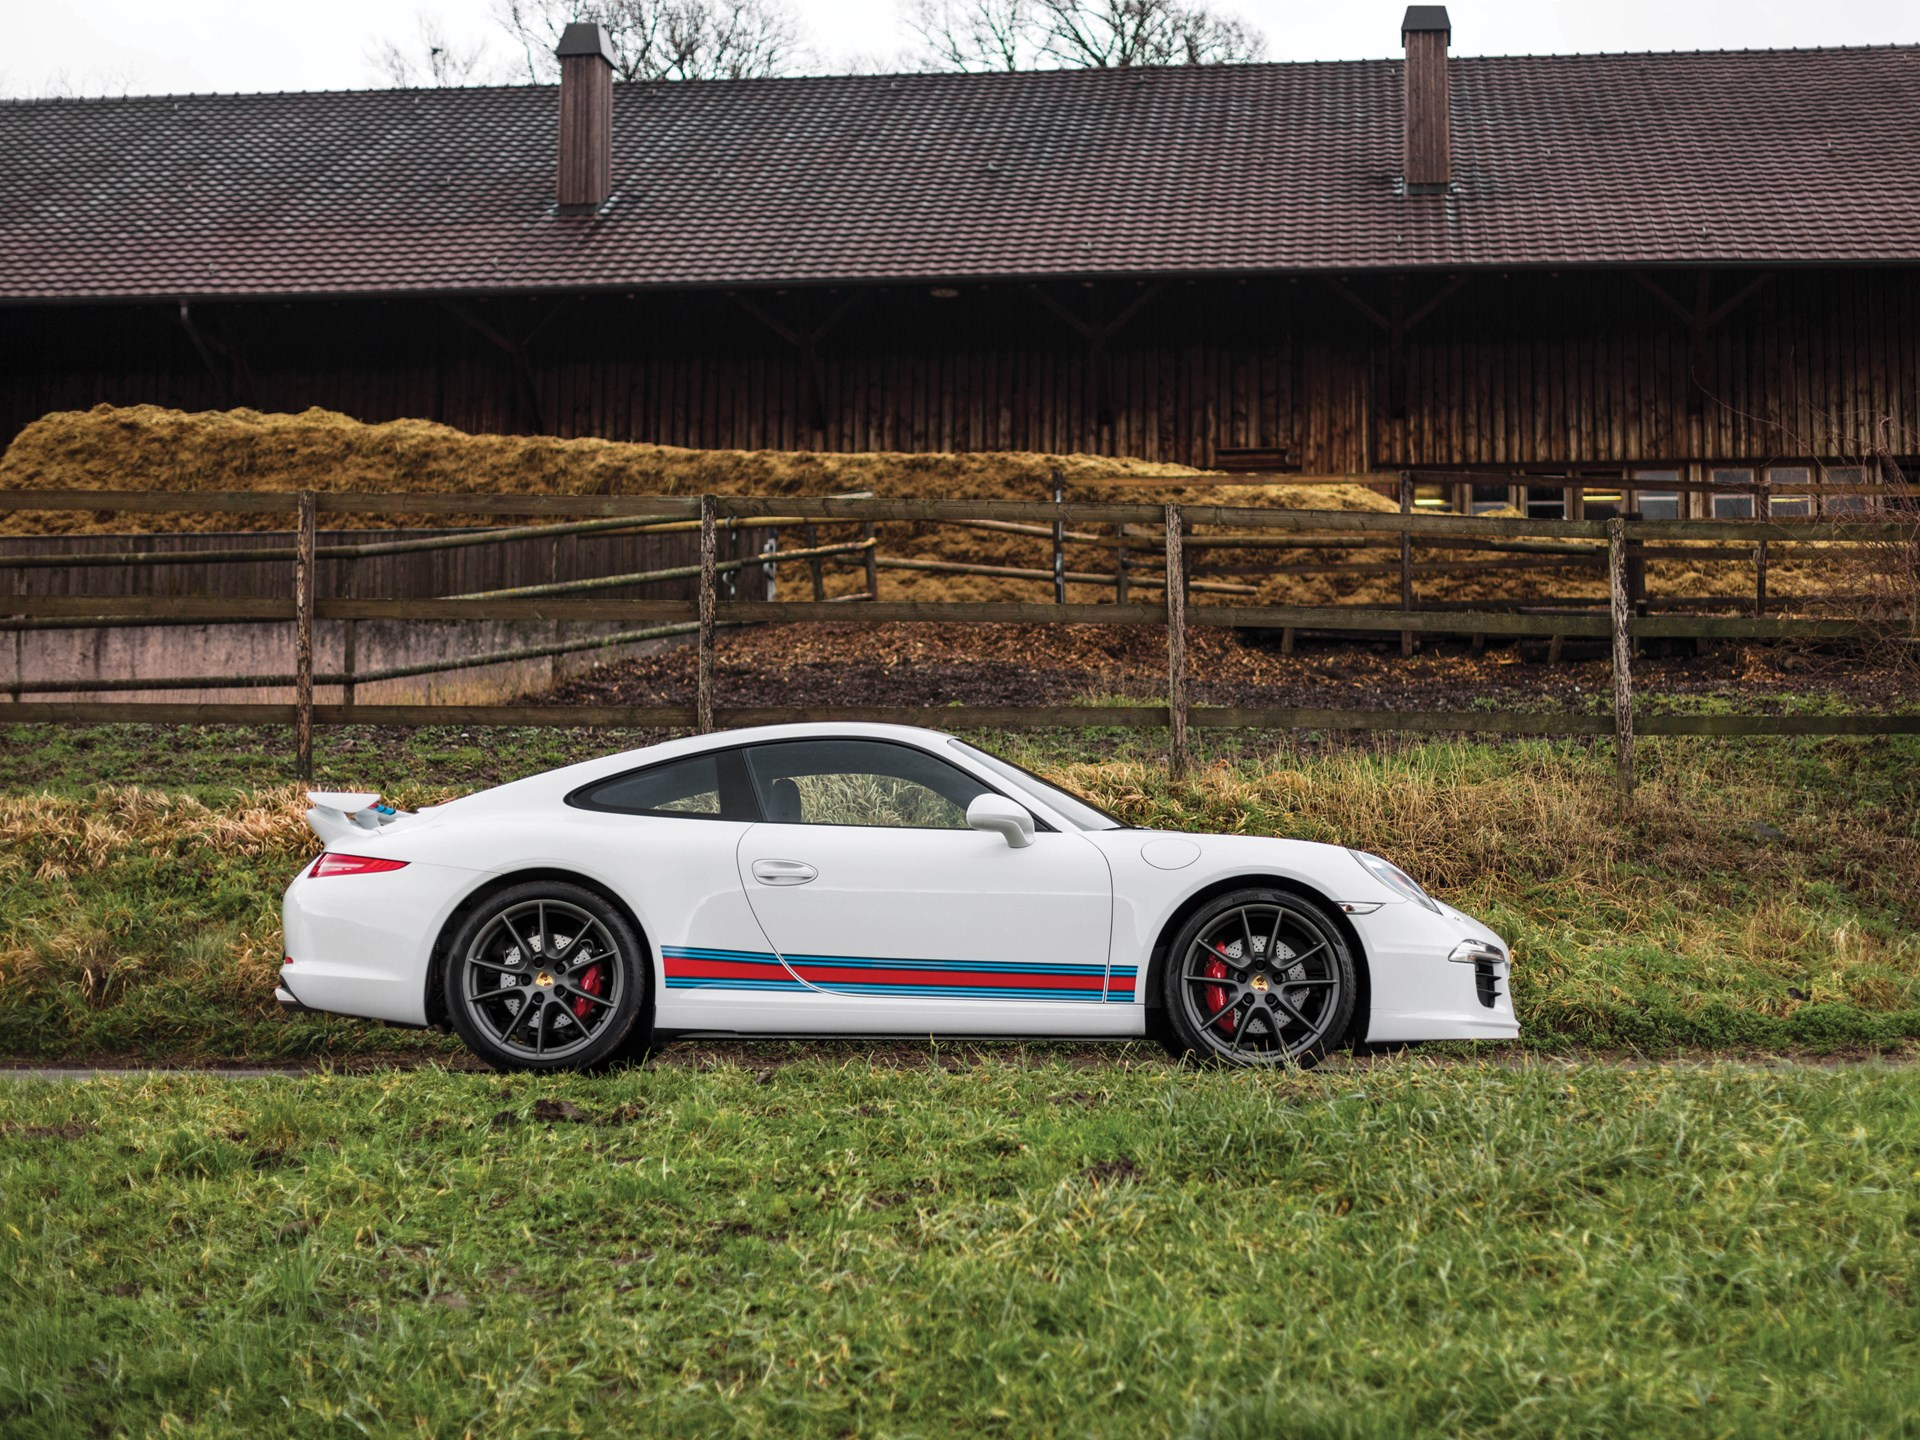 rm sotheby 39 s 2014 porsche 911 carrera s martini racing. Black Bedroom Furniture Sets. Home Design Ideas